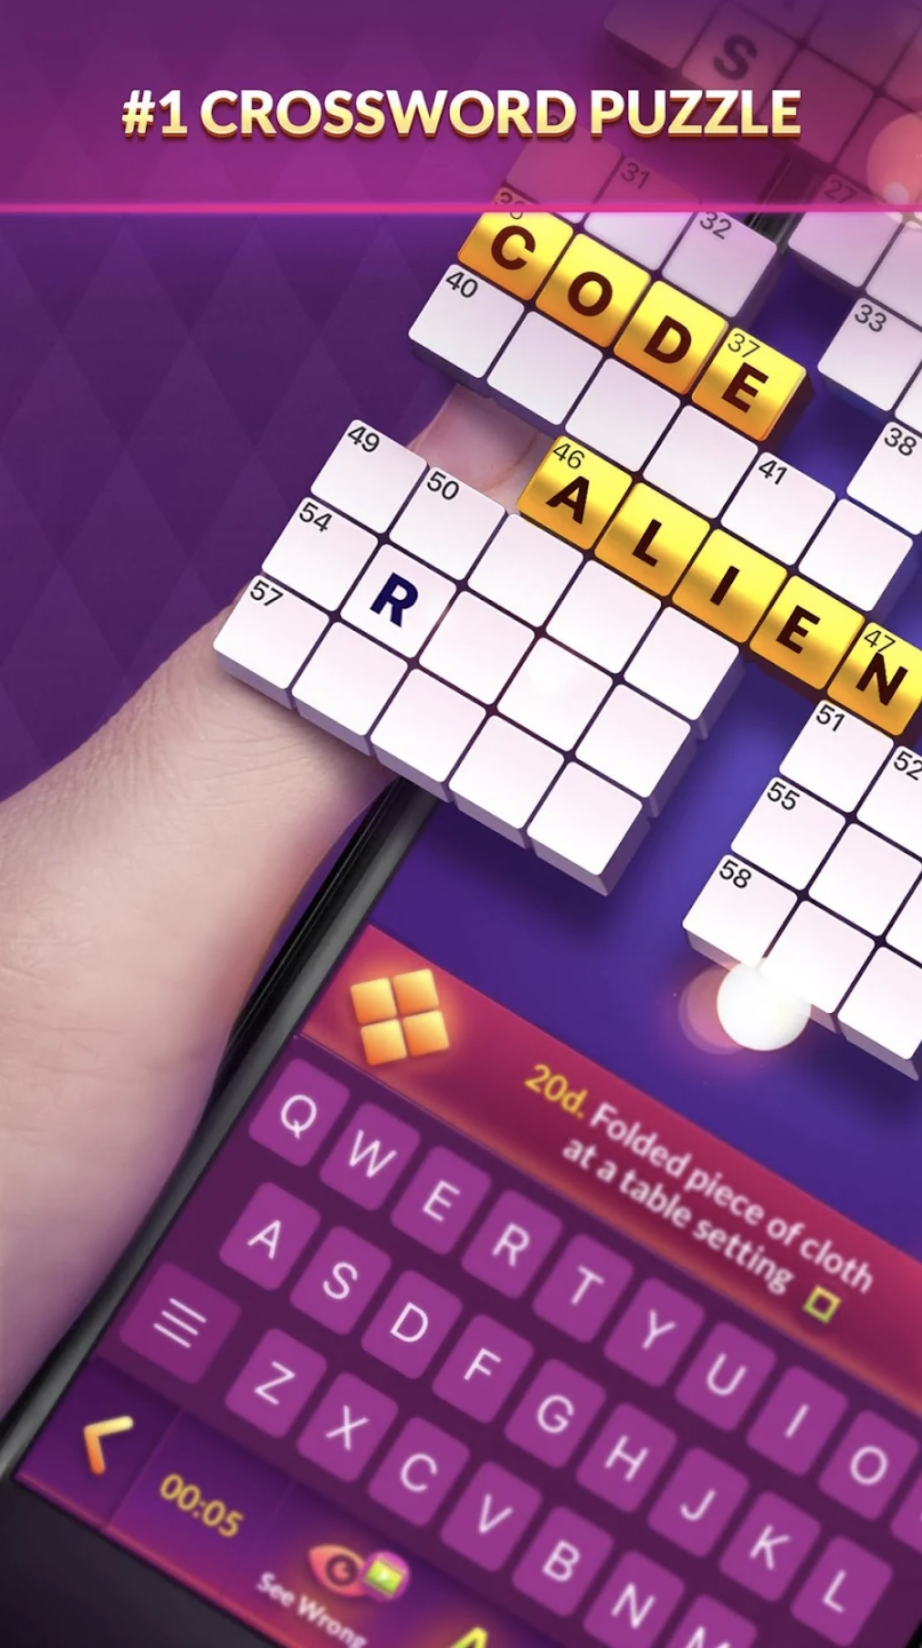 CrossWord Puzzle - Best CrossWord Solver App for Free on Android